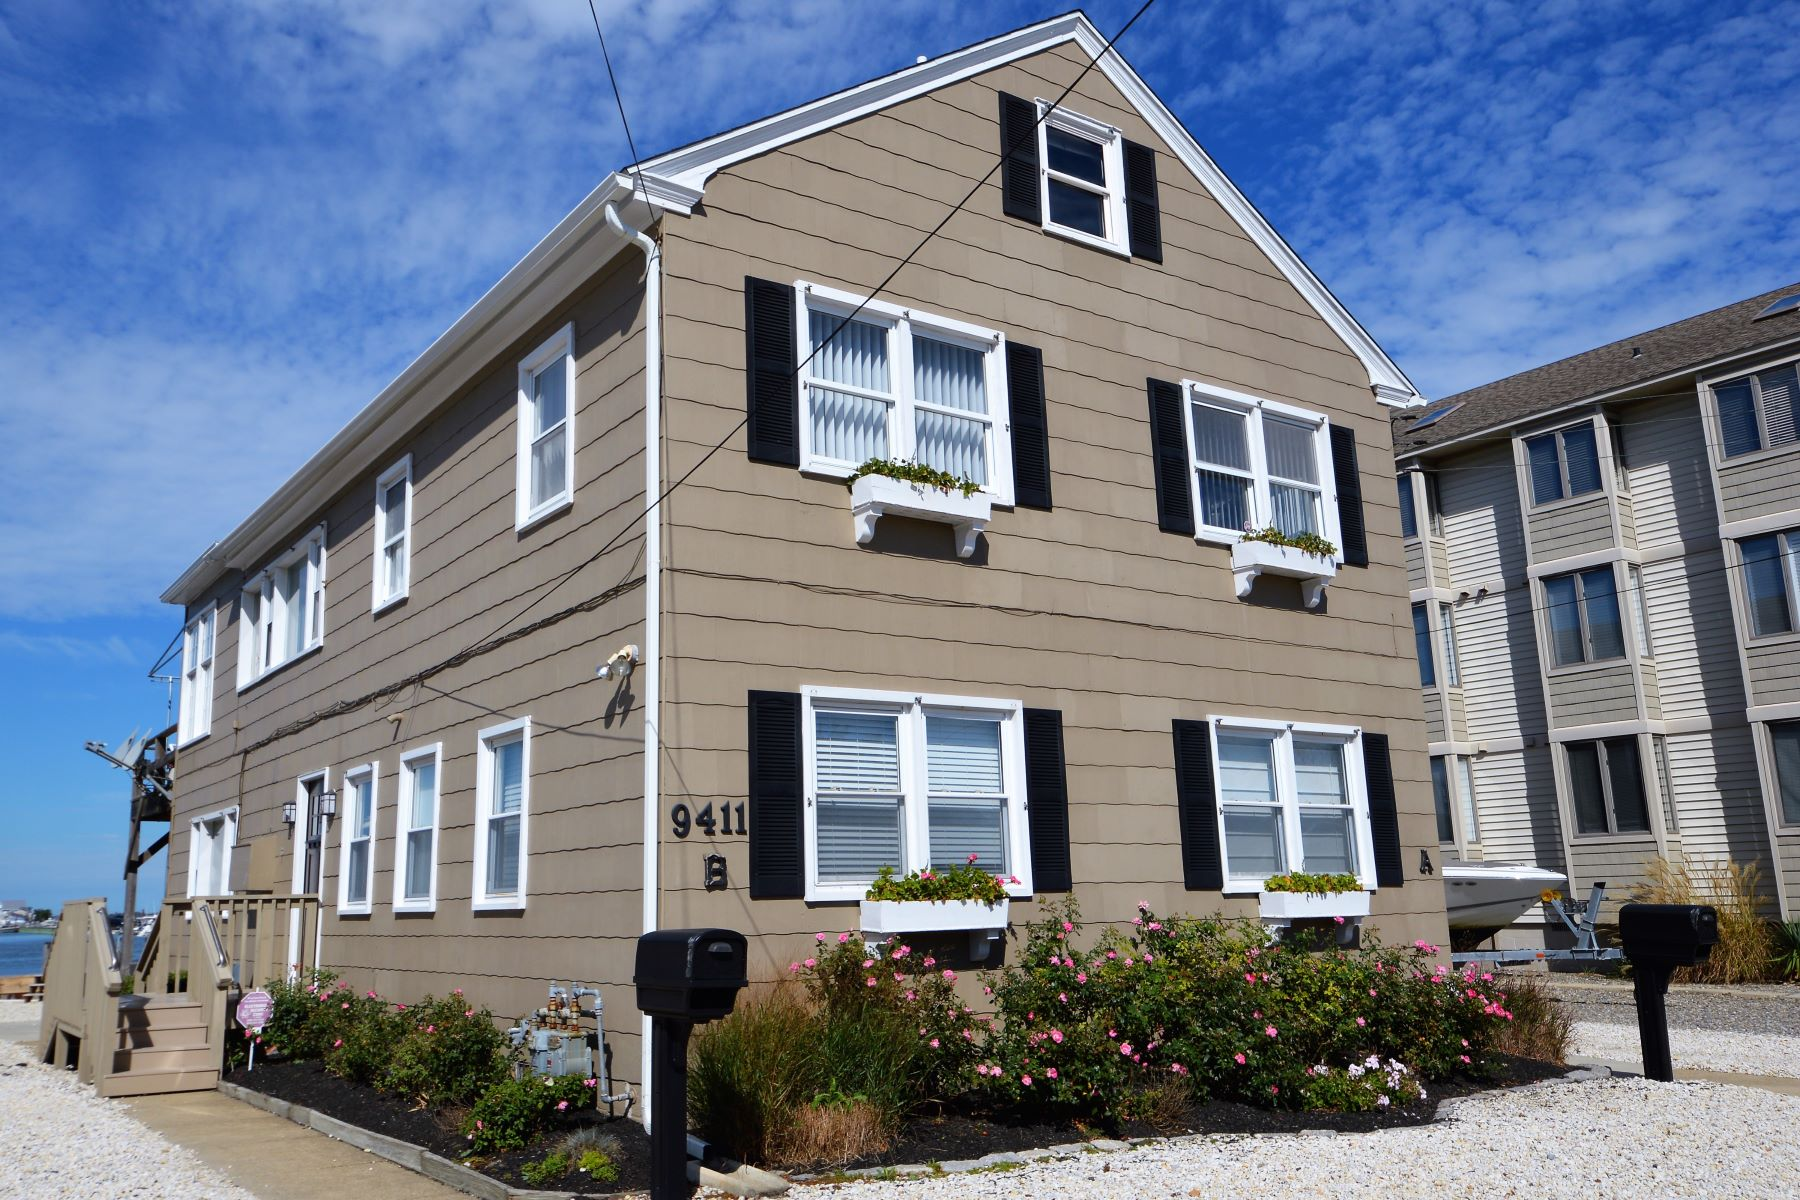 Duplex for Rent at 9411 Sunset Drive FIrst Floor, Stone Harbor, New Jersey 08247 United States